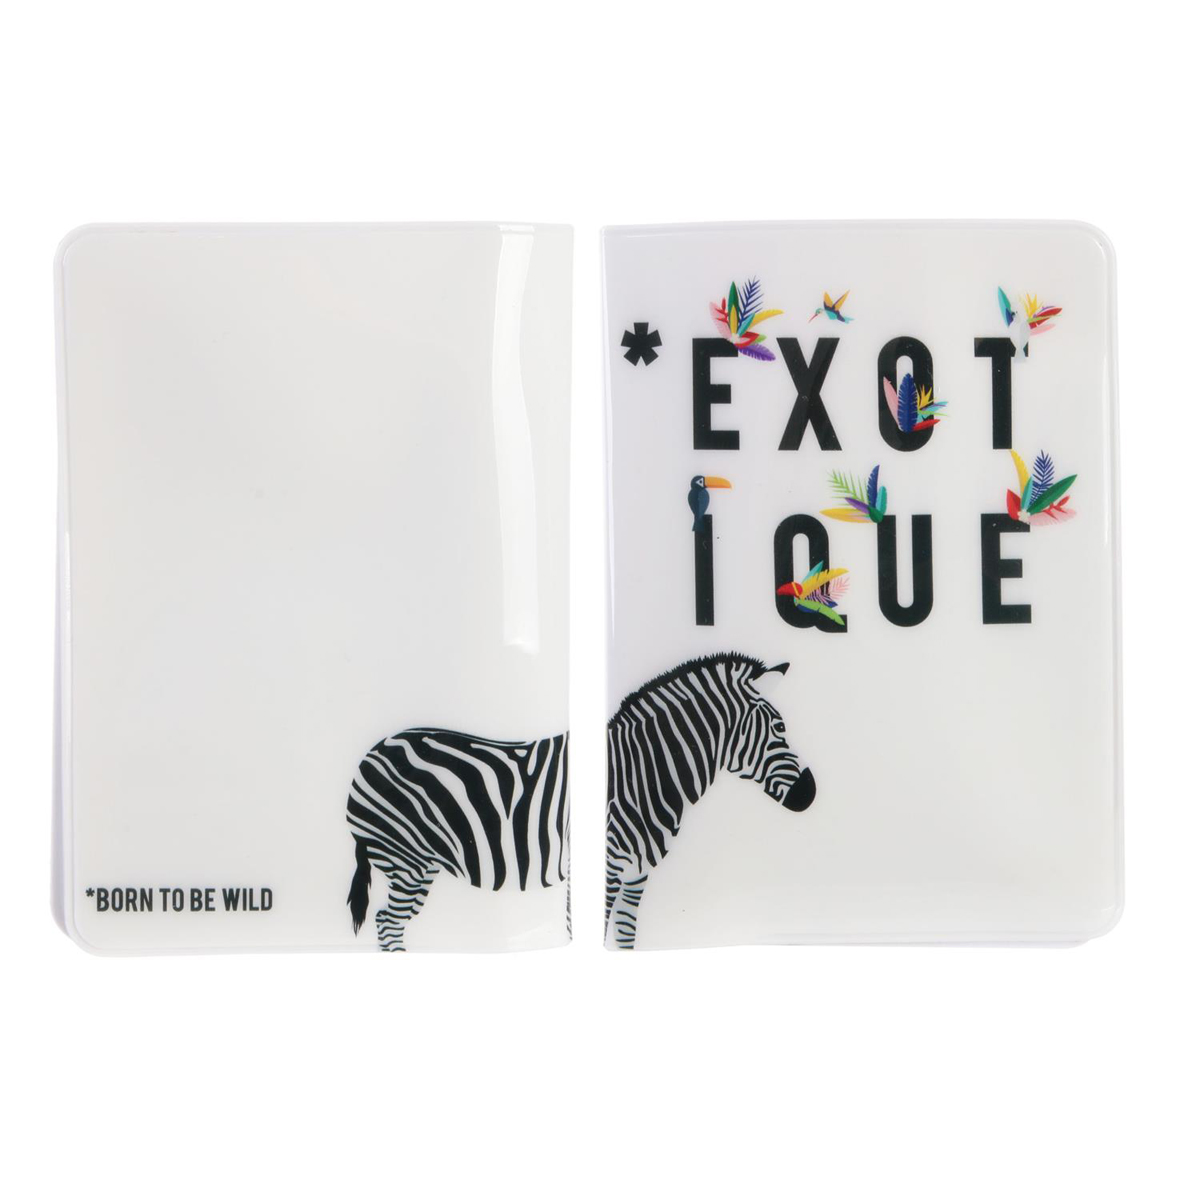 Etui passeport \'Tropical\' blanc multicolore (zèbre-exotique) - 14x10 cm - [Q7792]